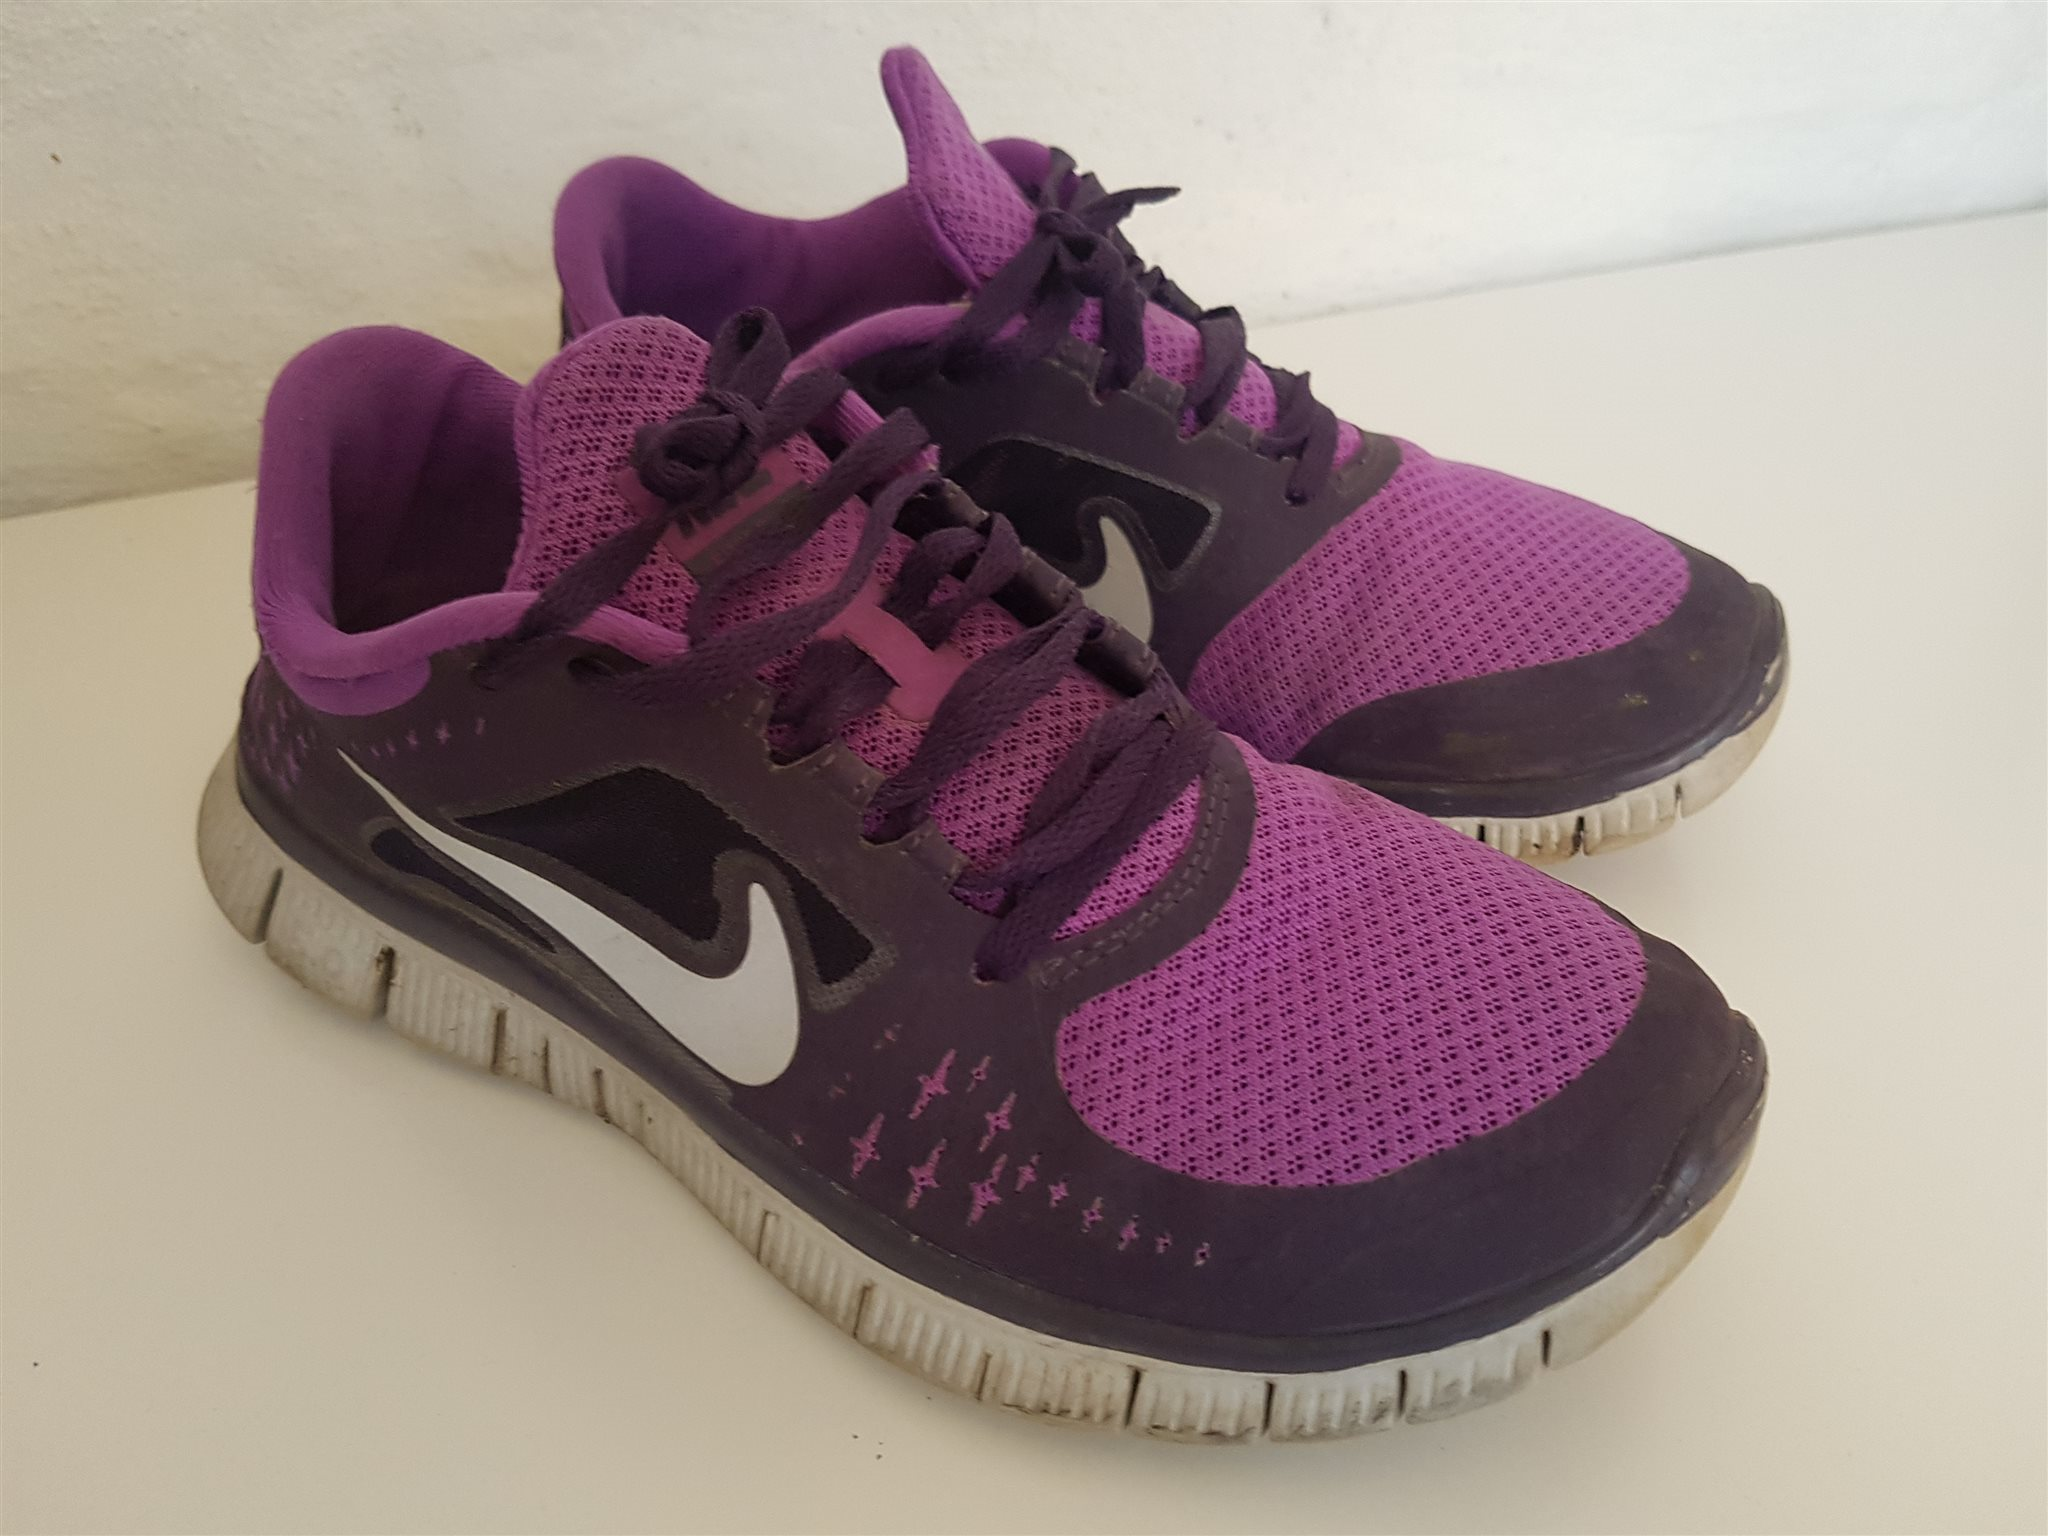 separation shoes 55cfe bd4ce ... quality design 7af82 5712b Lila Nike Free Run 3 skor sneakers storlek 38